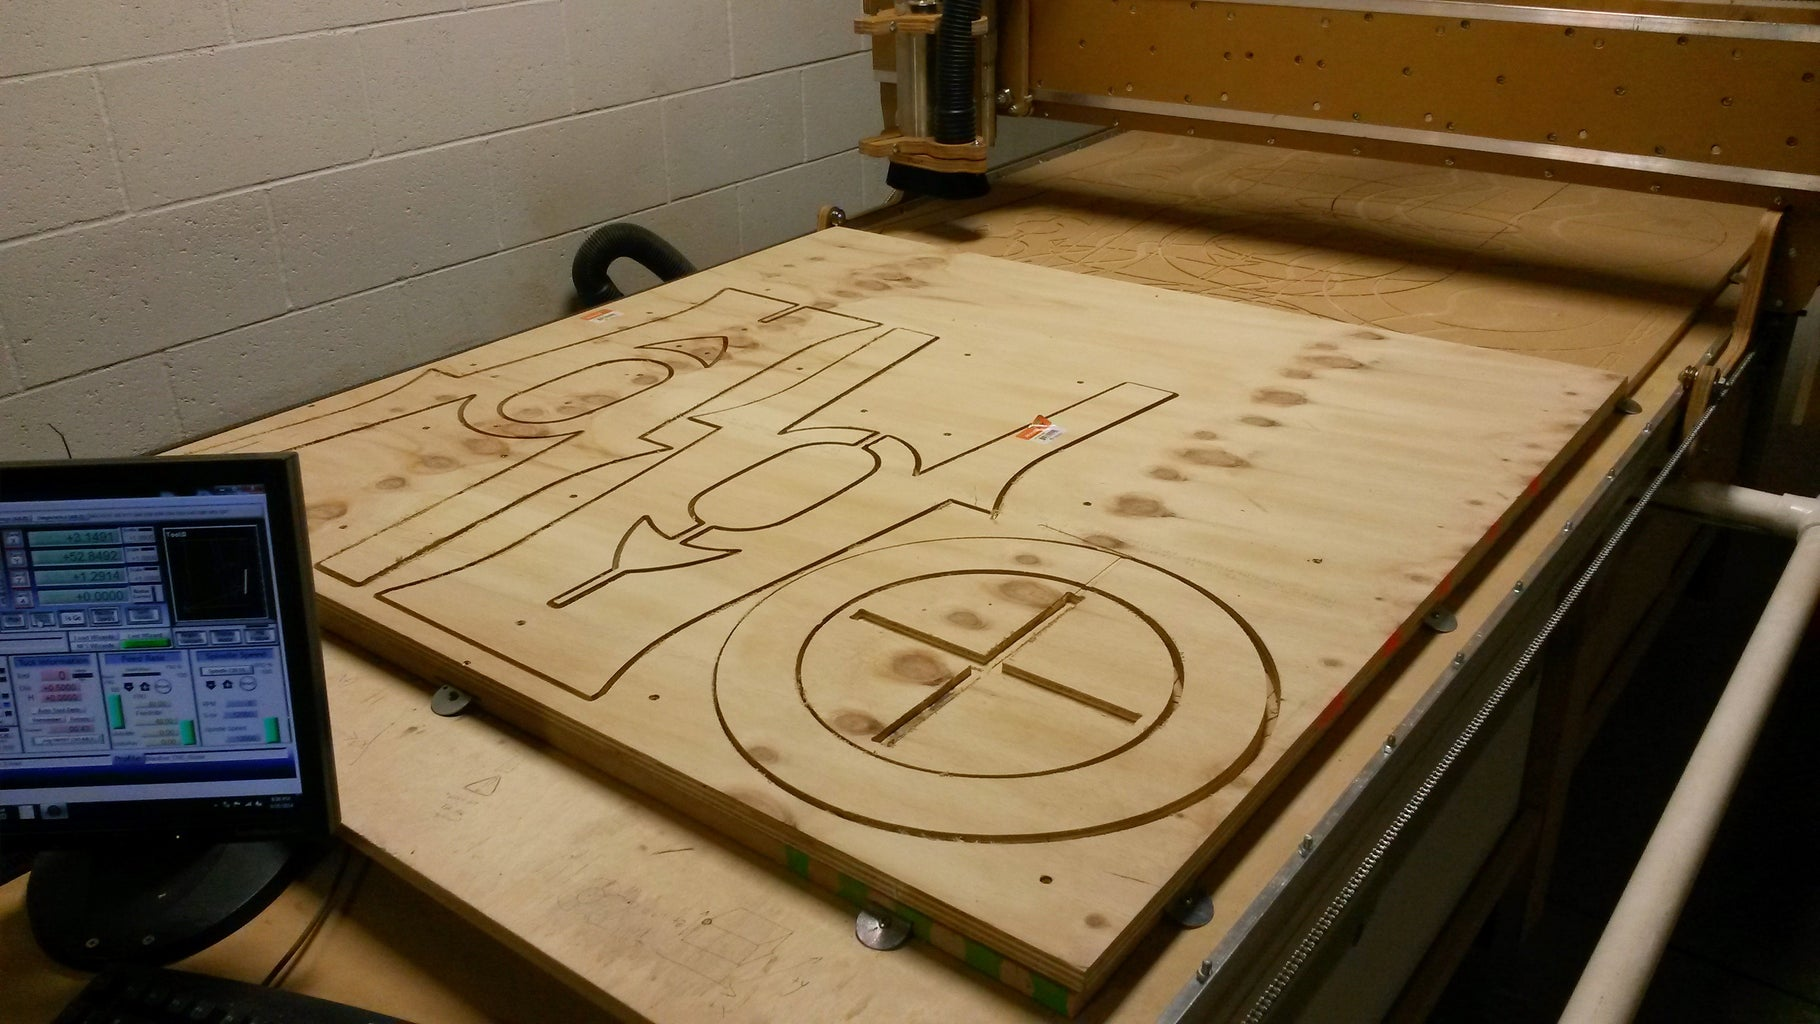 Set Up CNC Router and Begin Cutting